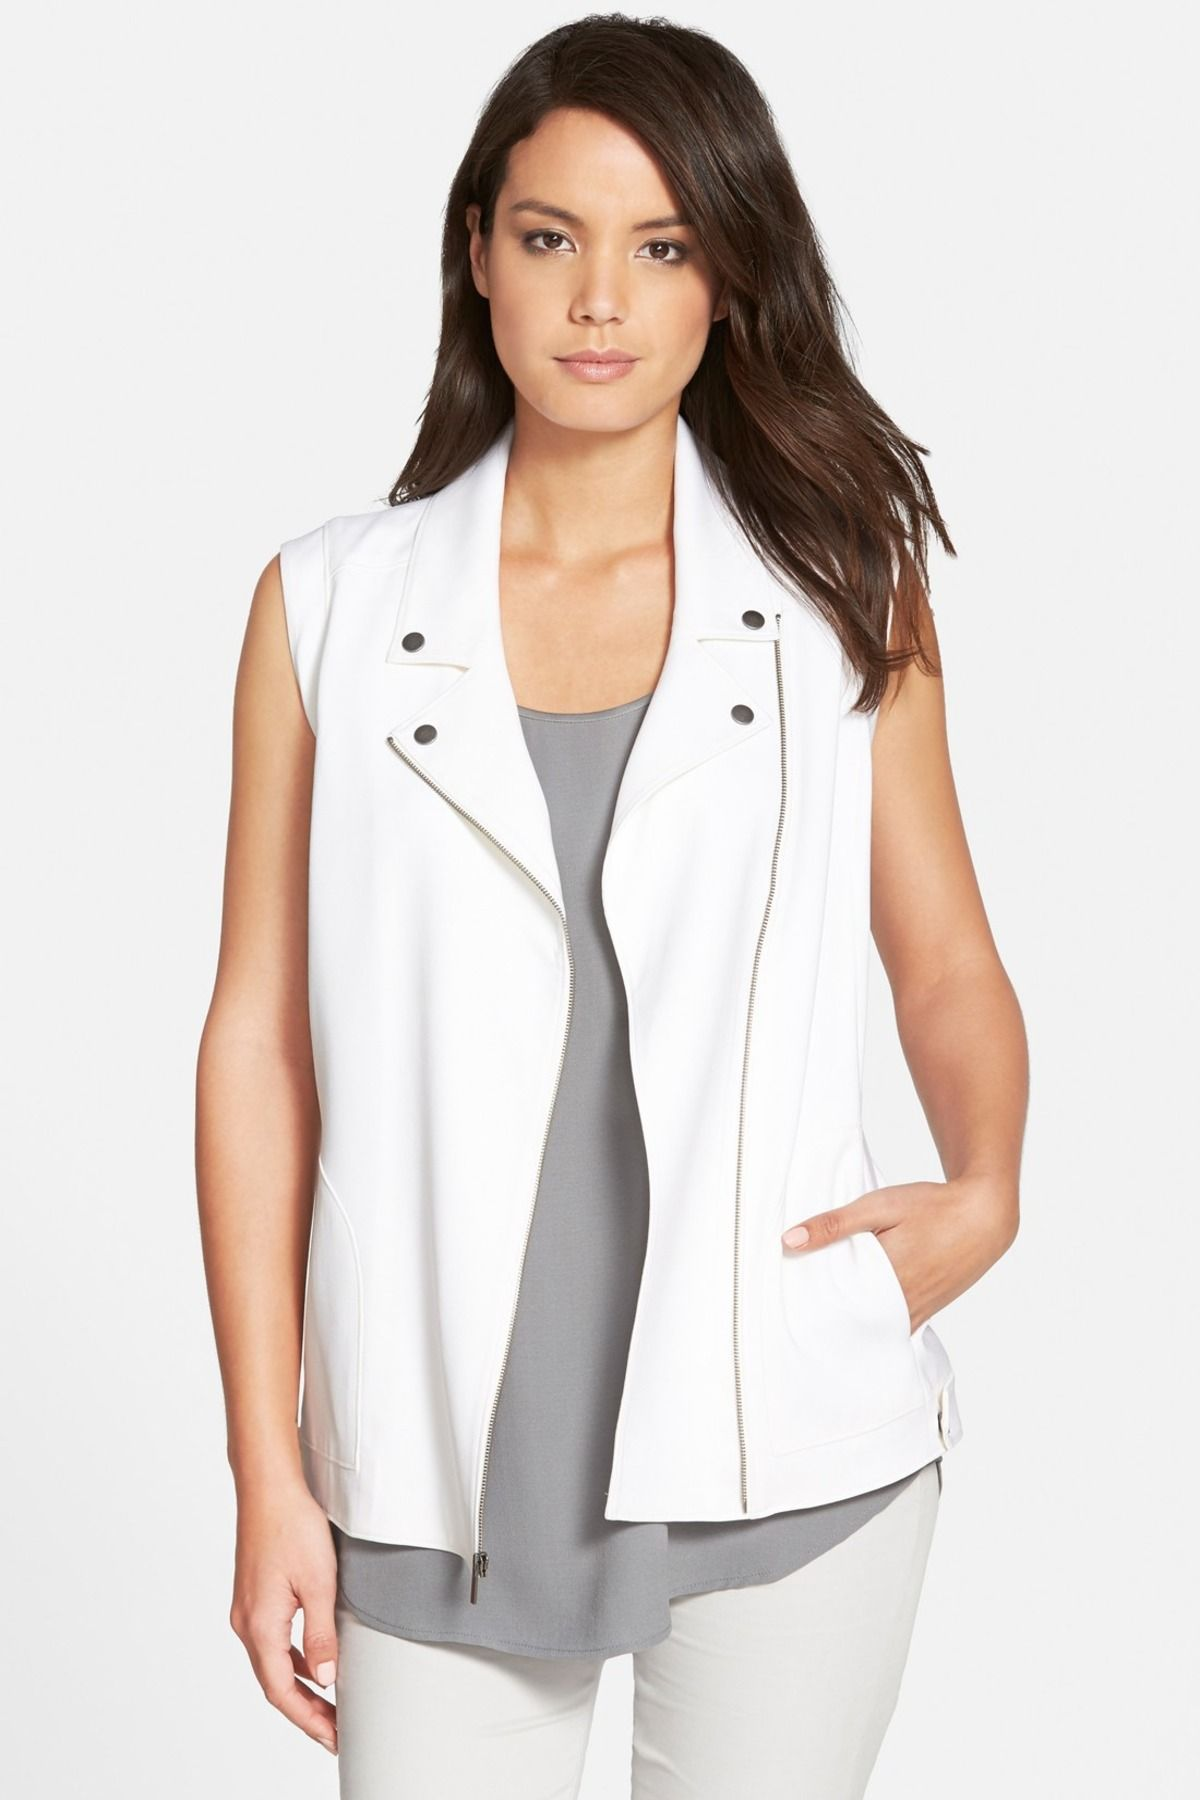 Classiques Entier - 'Kiara' Zip Front Silk Vest at Nordstrom Rack. Free Shipping on orders over $100.